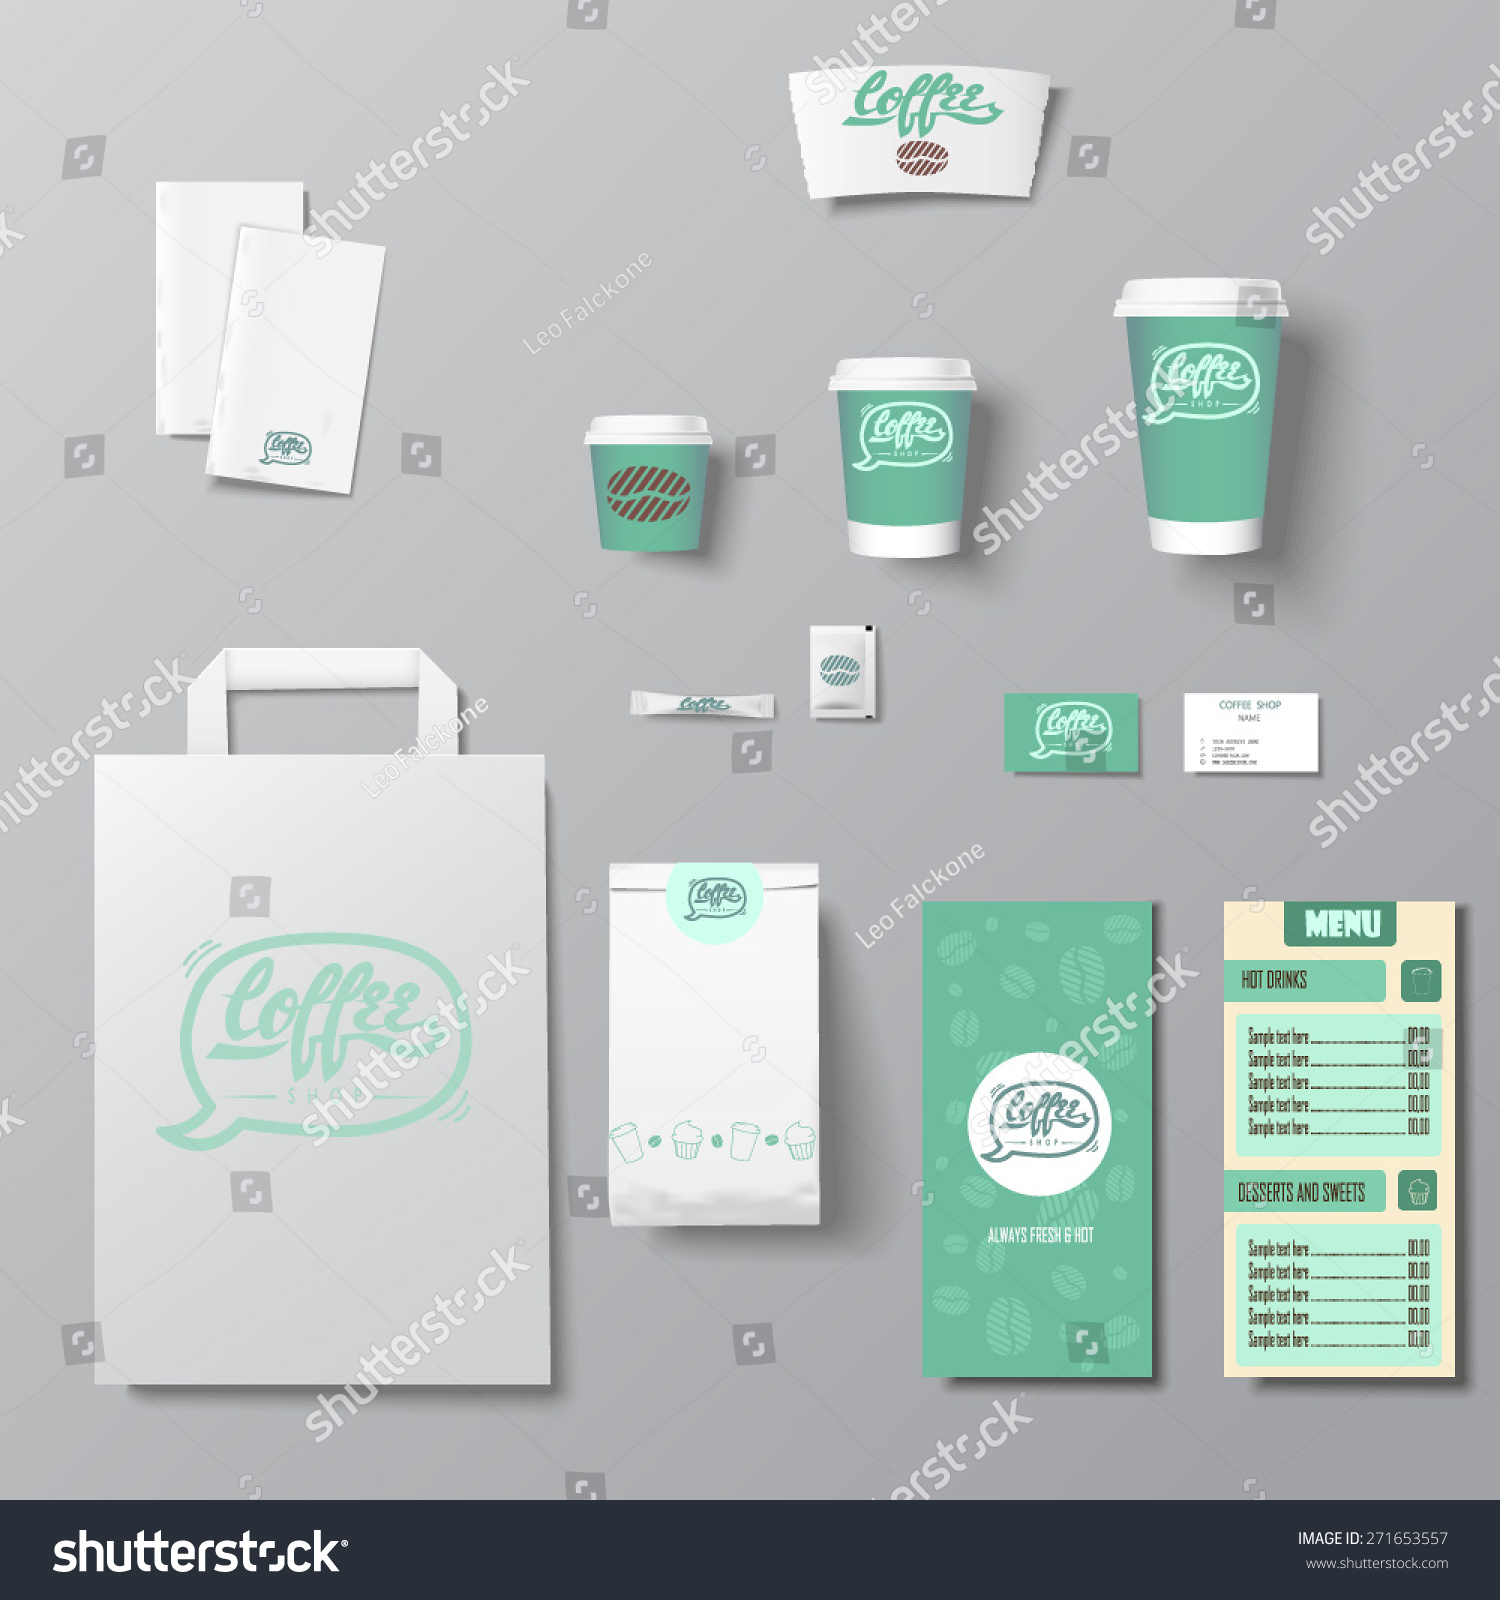 Coffee Shop Corporate Identity Template Design Stock Vector ...